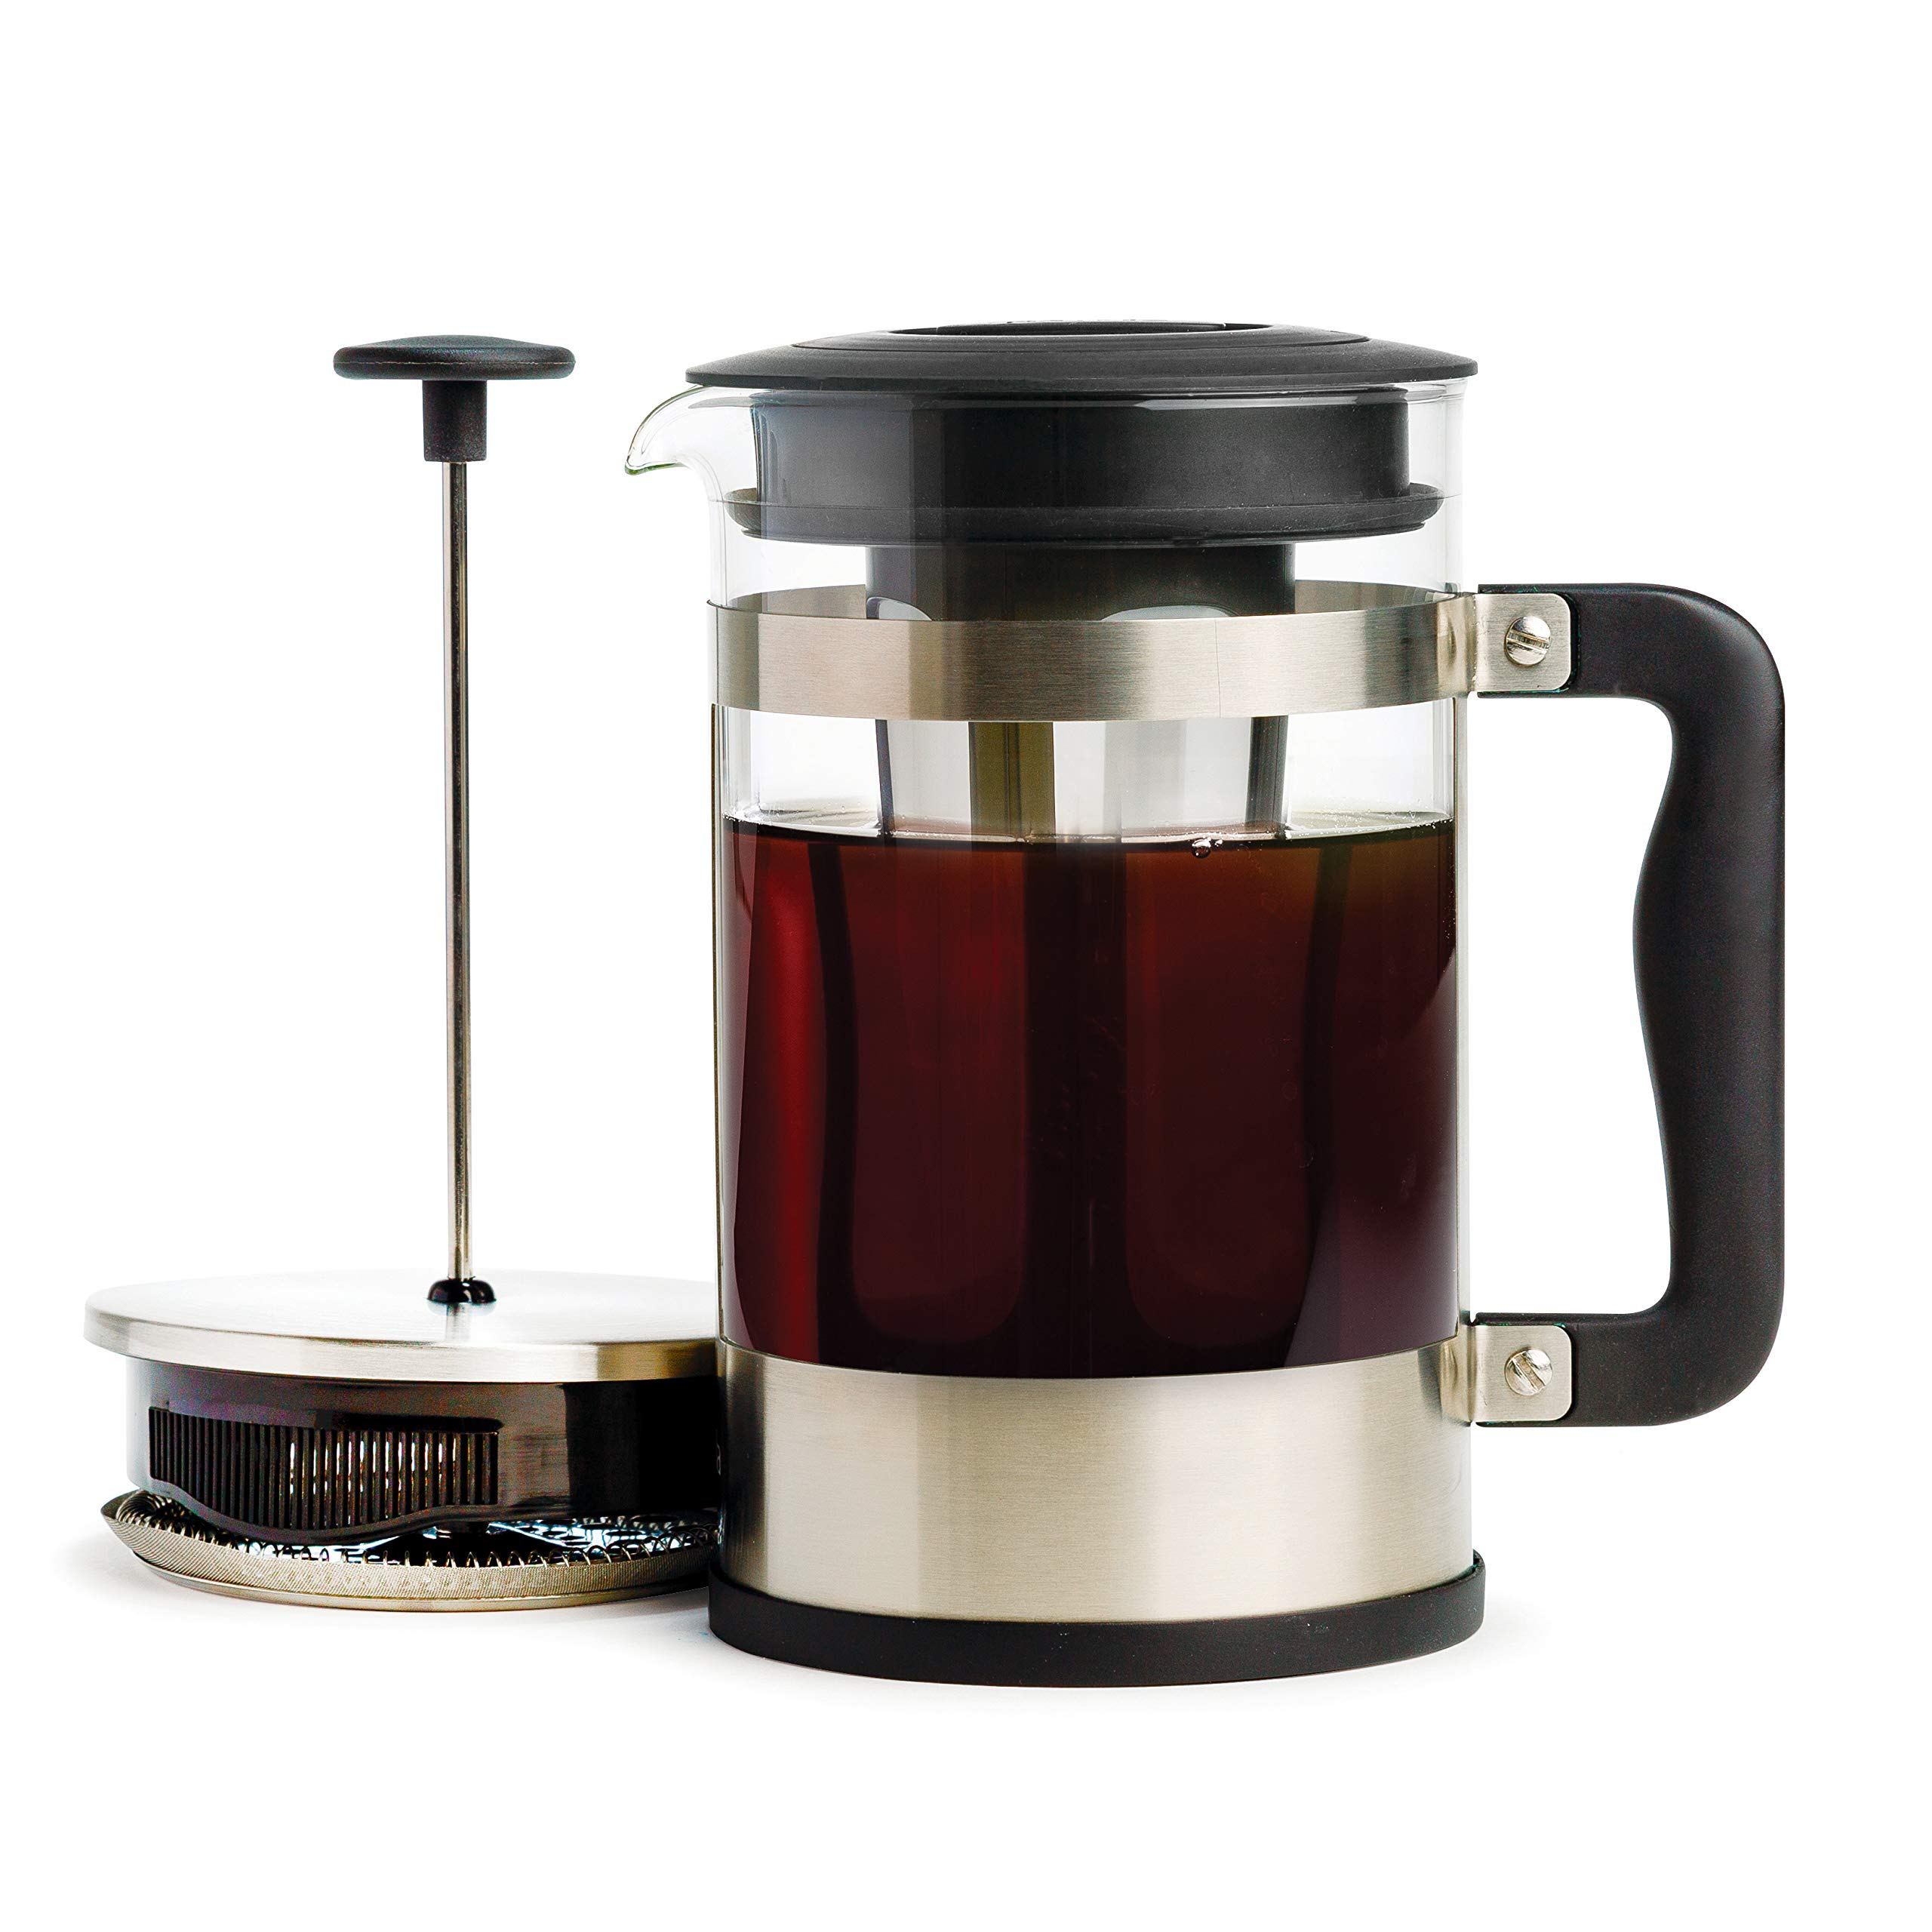 Amazon Com Primula 2 In 1 French Press Cold Brew One Coffee Maker Comfort Grip Handle Durable Glass Carafe Perfect Size 6 Cup Stainless Steel Kitchen Dining